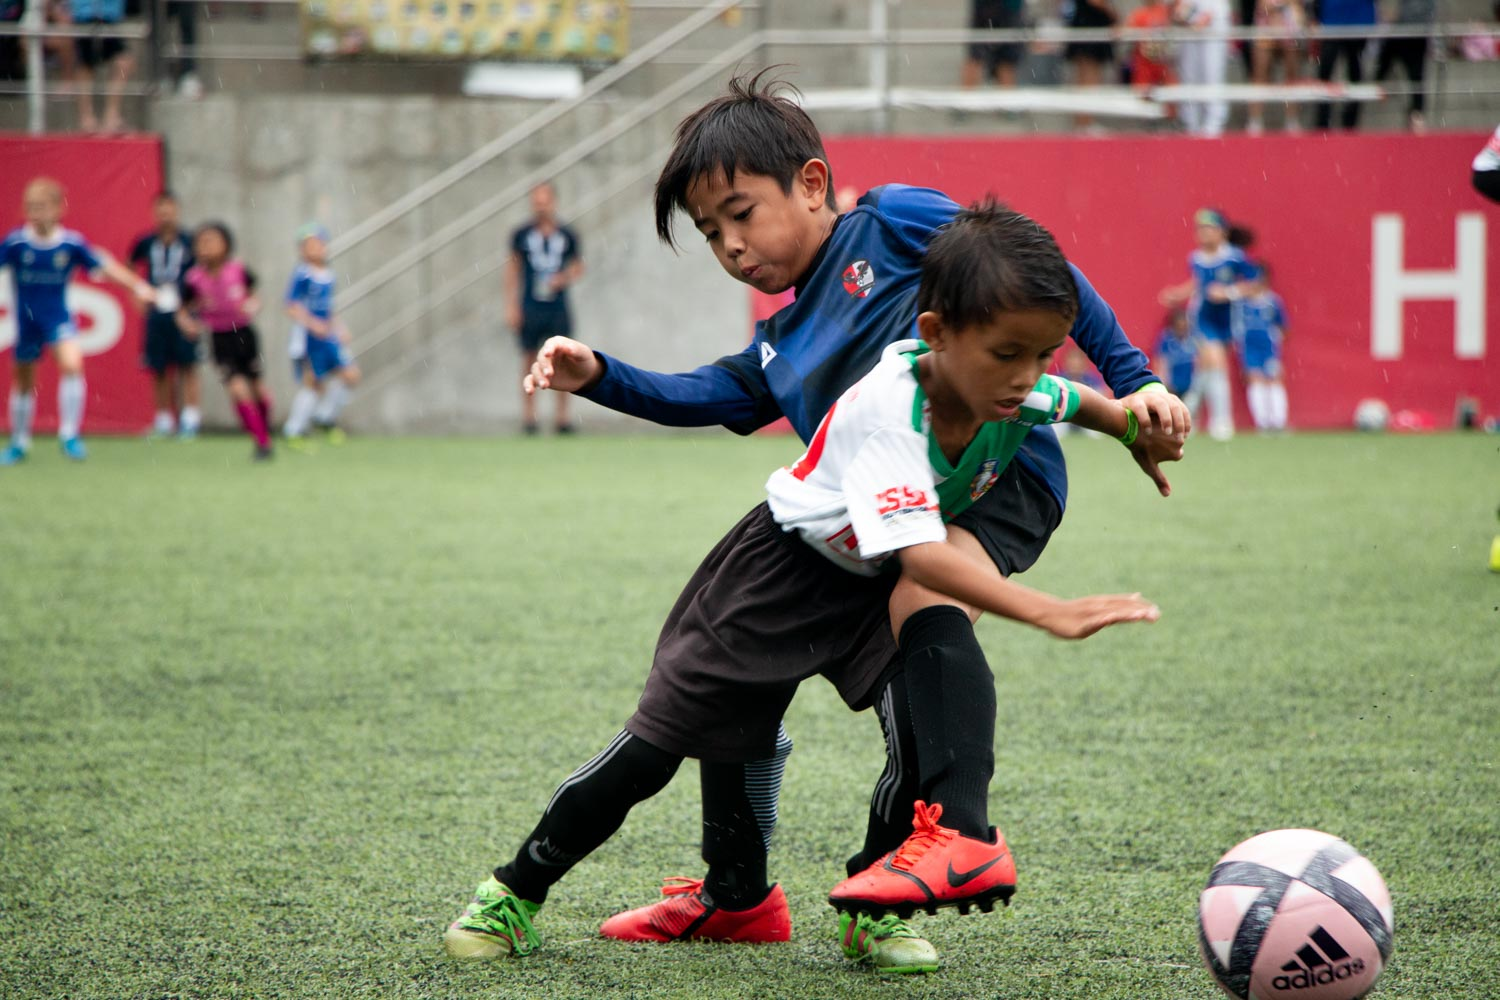 Find your full youth soccer potential at FC Kuala Lumpur